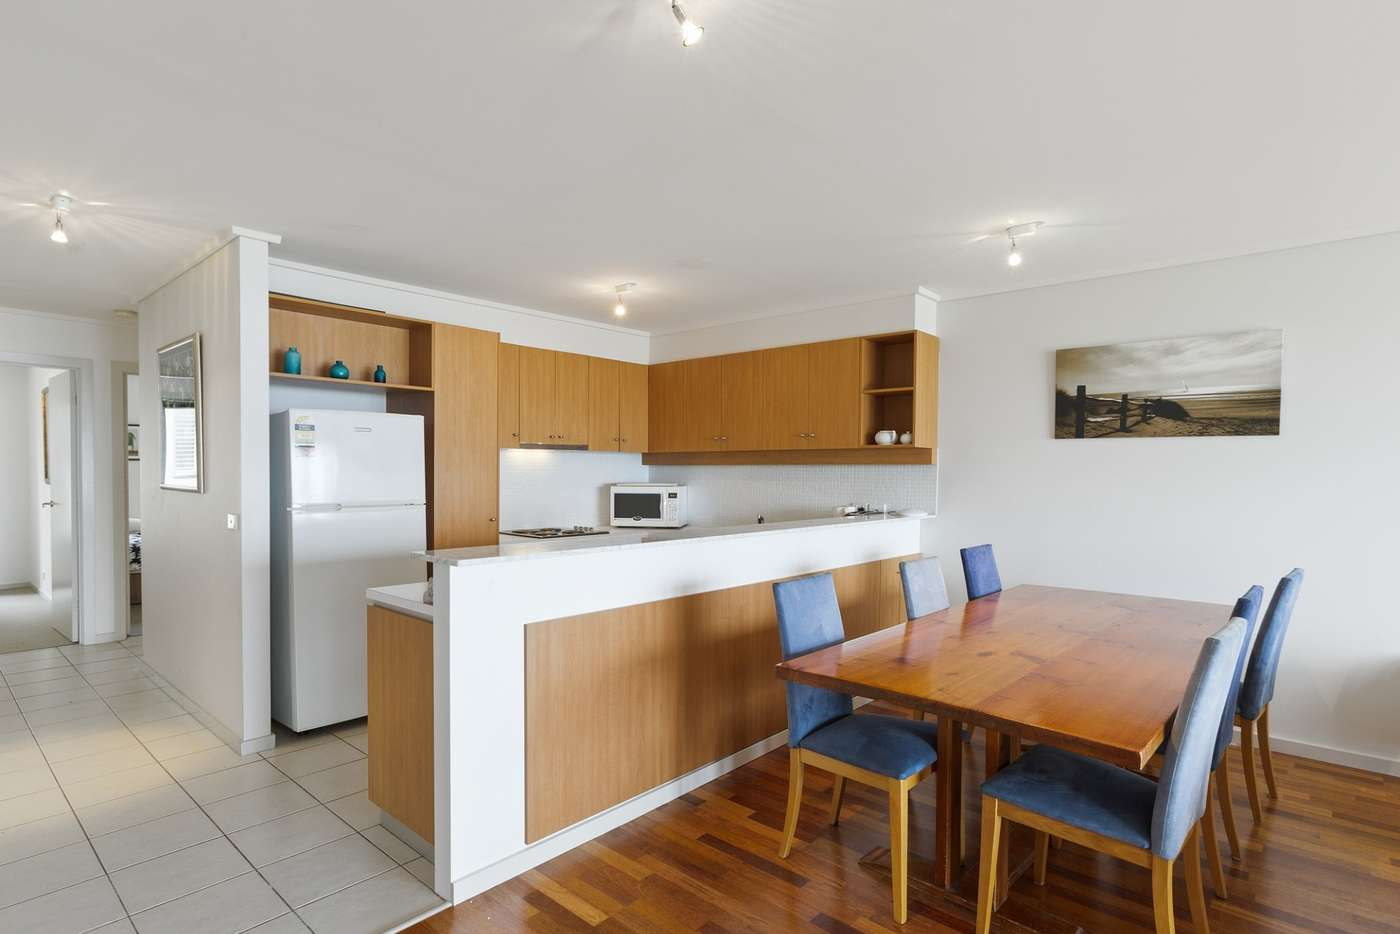 Main view of Homely house listing, 18/2-10 Ocean Road South Road, Lorne VIC 3232